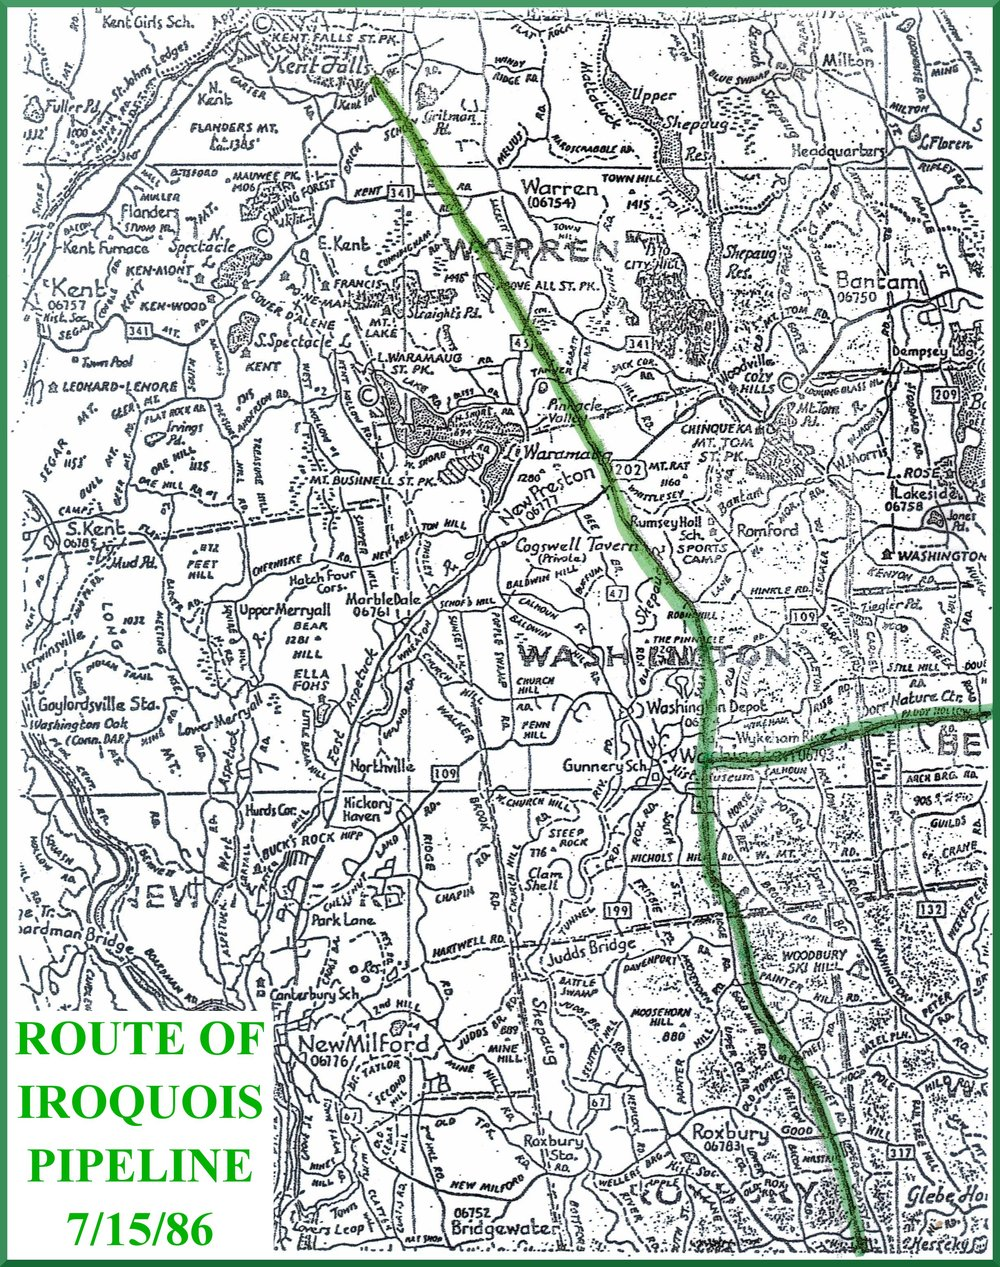 Route of the Iroquois Pipeline proposed in 1986. With WEC's help, this project was rerouted.